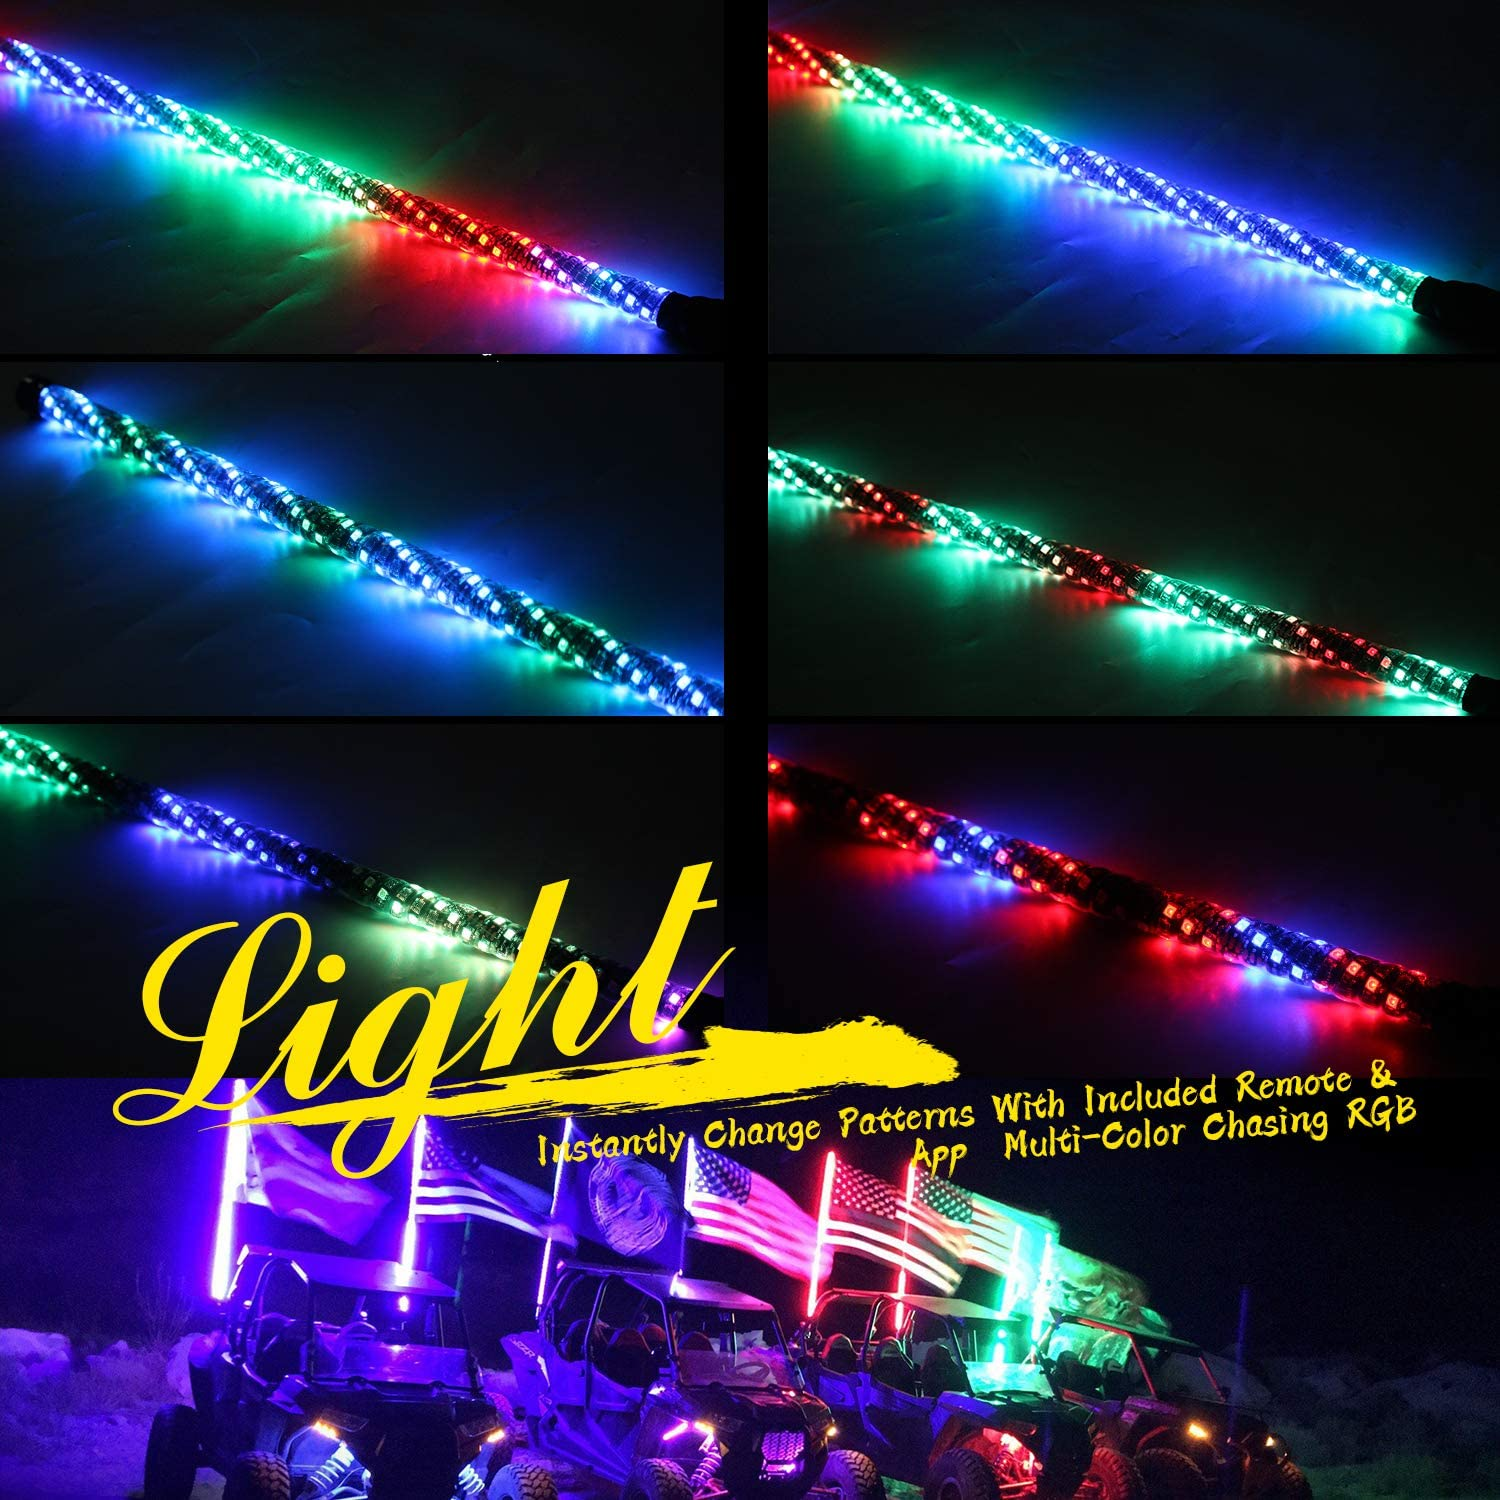 lighted whips With Dacning//Chasing and Can Controlled by remote and app Simultaneously with Lock Function 0.9M Yewhis 2PCS 3FT